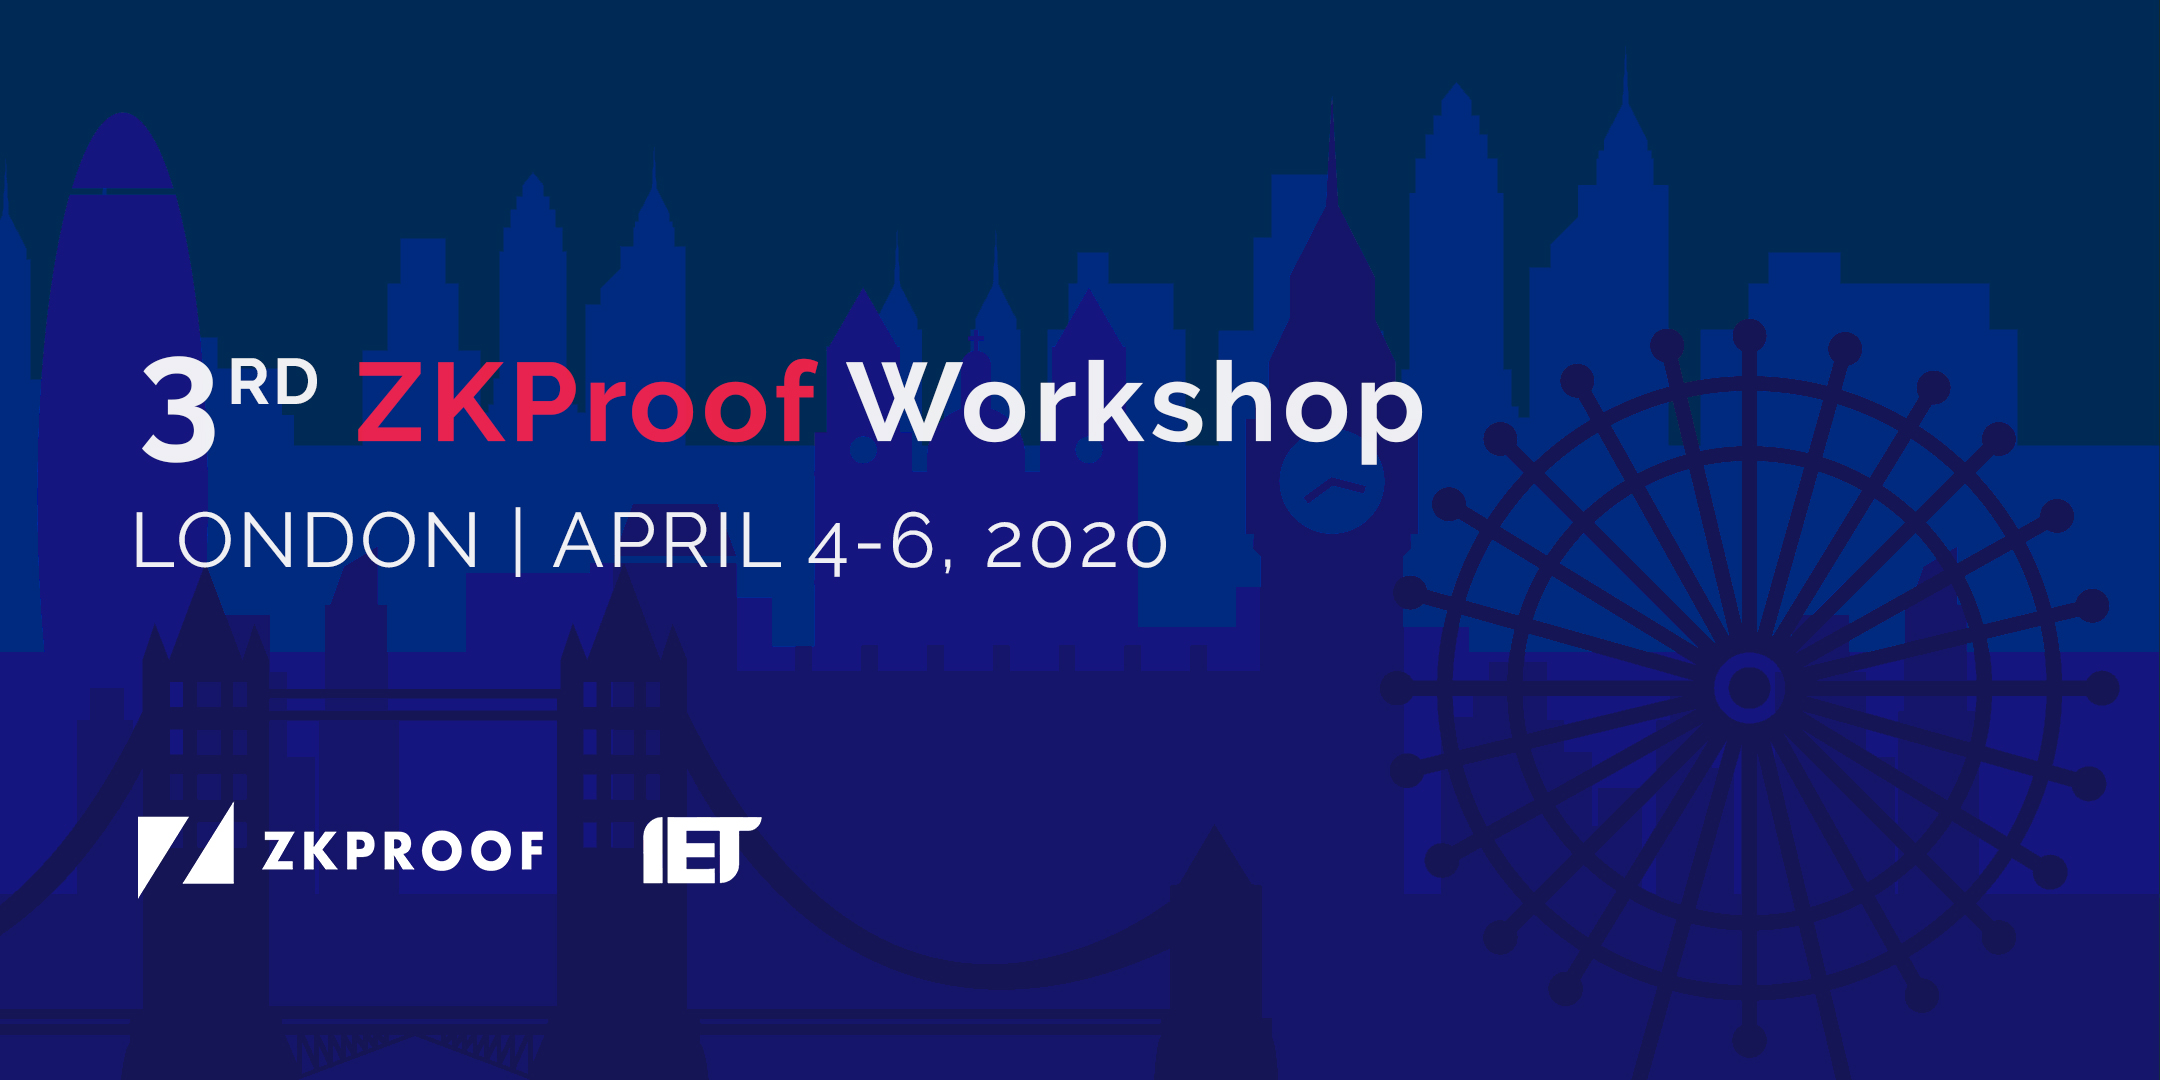 3rd ZKProof Workshop